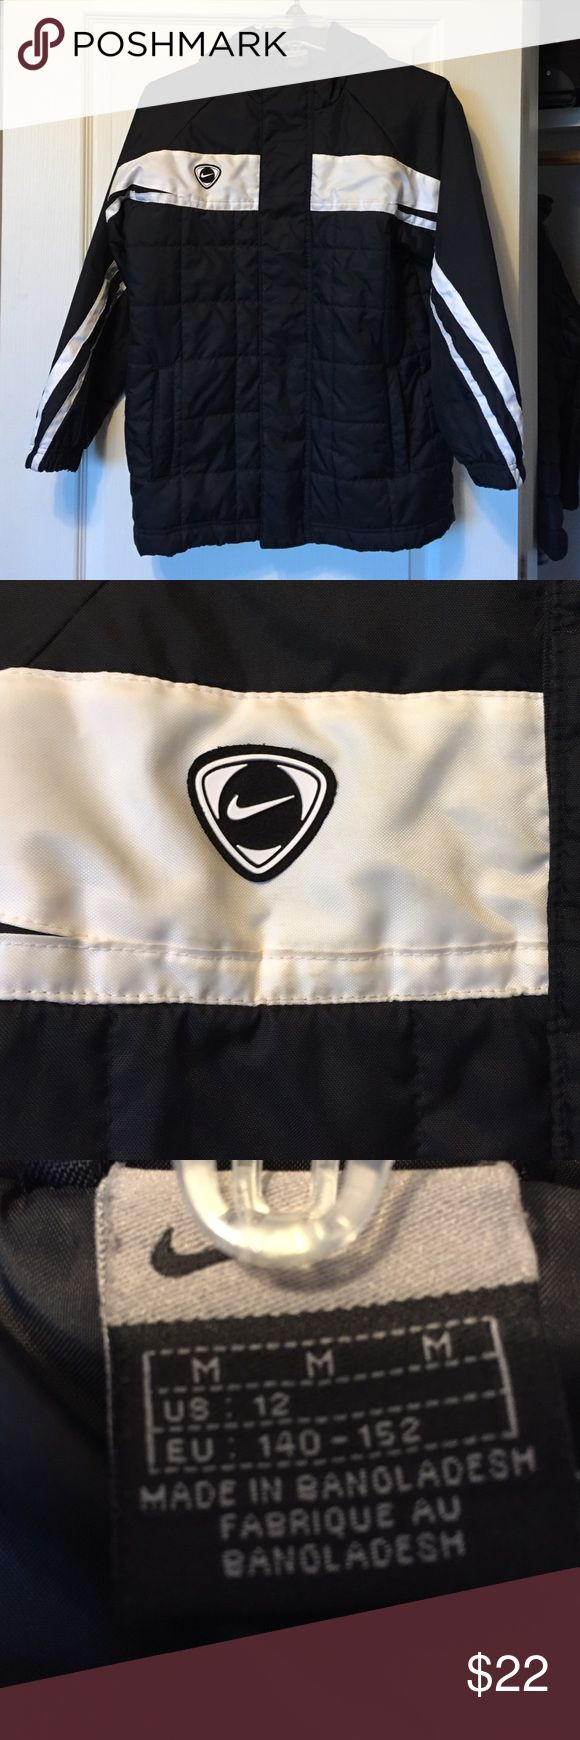 Boys Nike Coat 12 Medium Black and white.  Hooded.  Hood. Front has zipper and snaps.  Elastic at cuffs.  Insulated coat.  Worn two times - there is dirt on the front stripe - I think it will wash right out. Nike Jackets & Coats Puffers